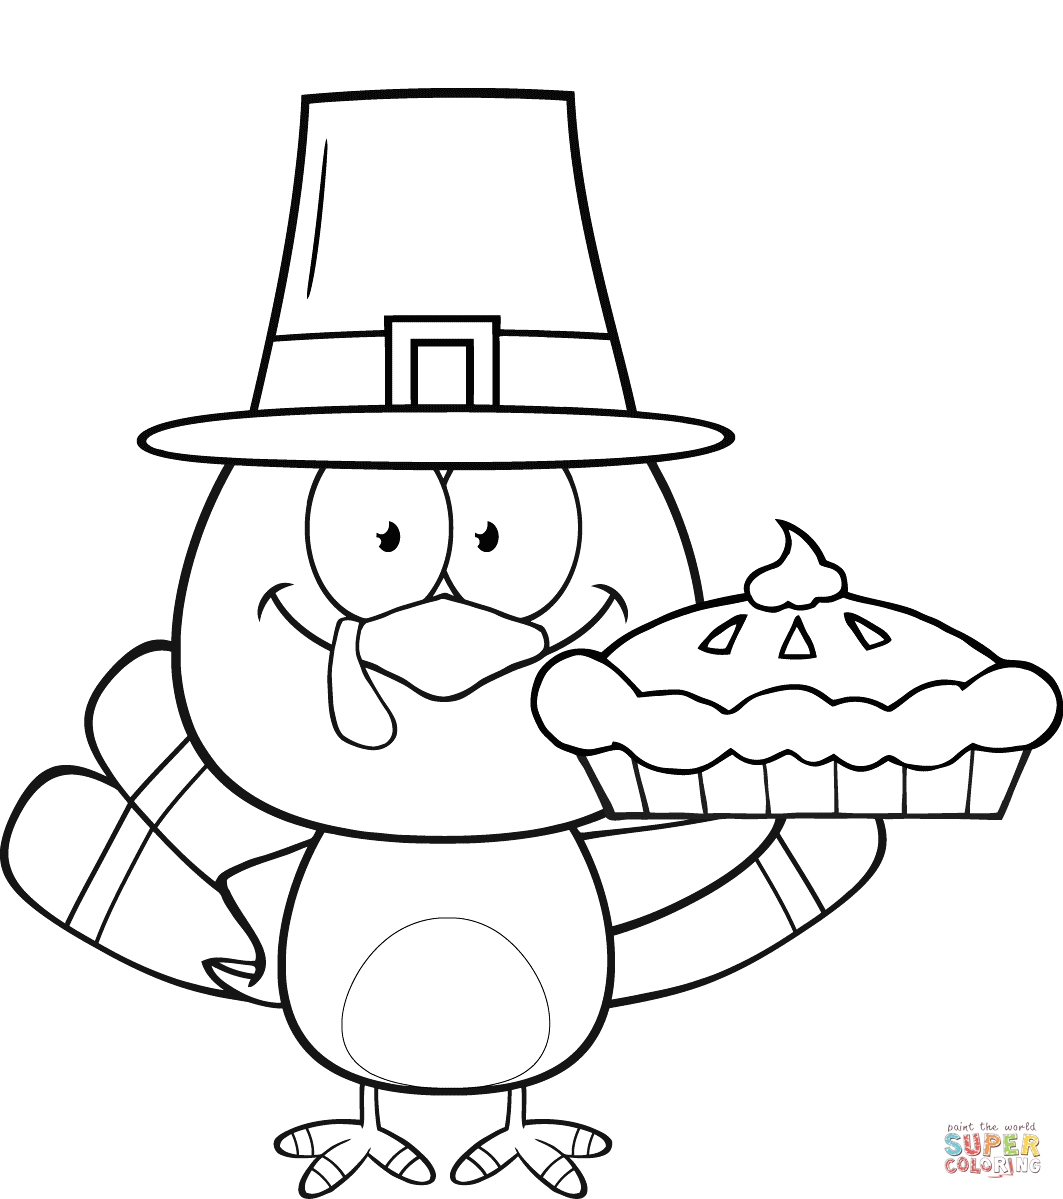 Cute Pilgrim Turkey Holding A Pie Coloring Page